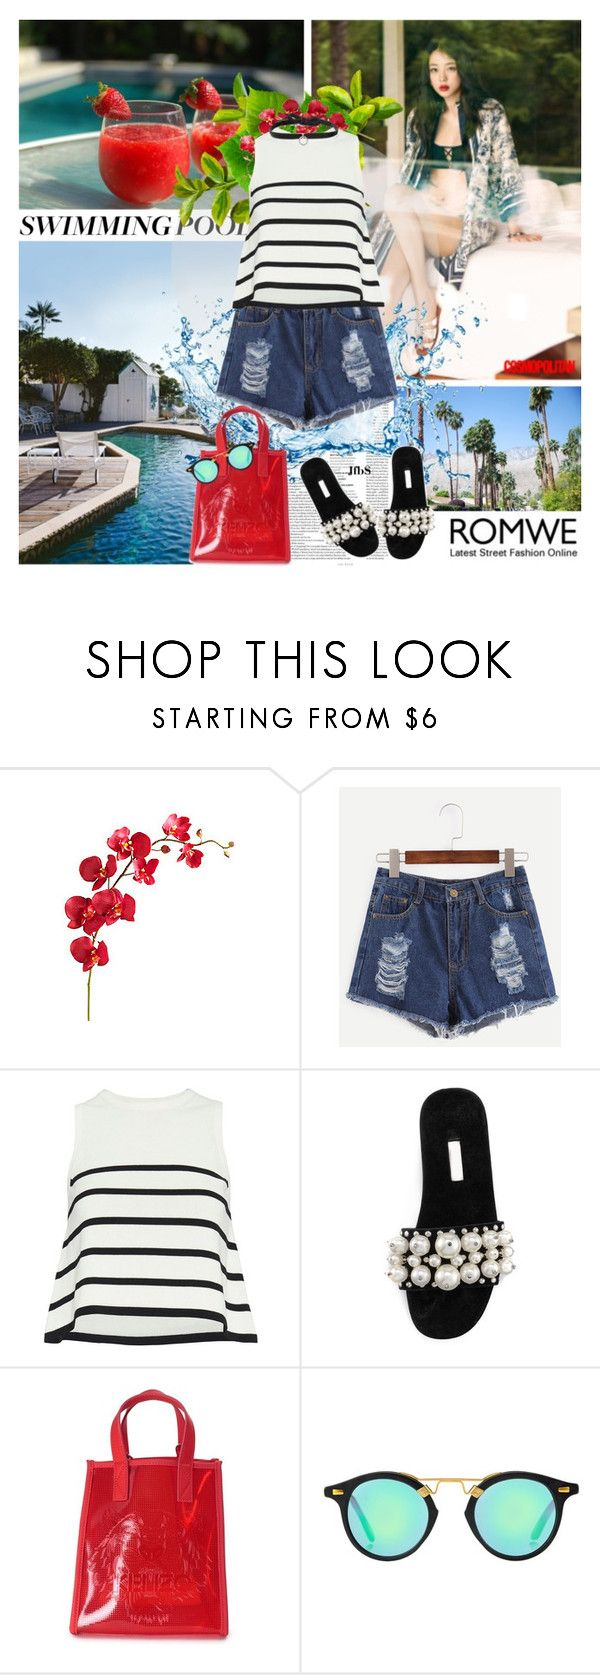 """""""#426 - """"Relax and Enjoy"""""""" by jfbs ❤ liked on Polyvore featuring Pier 1 Imports, Cardigan, Miu Miu, Kenzo, DANNIJO, romwe, casualoutfit, summerstyle, CasualChic and summer2016"""